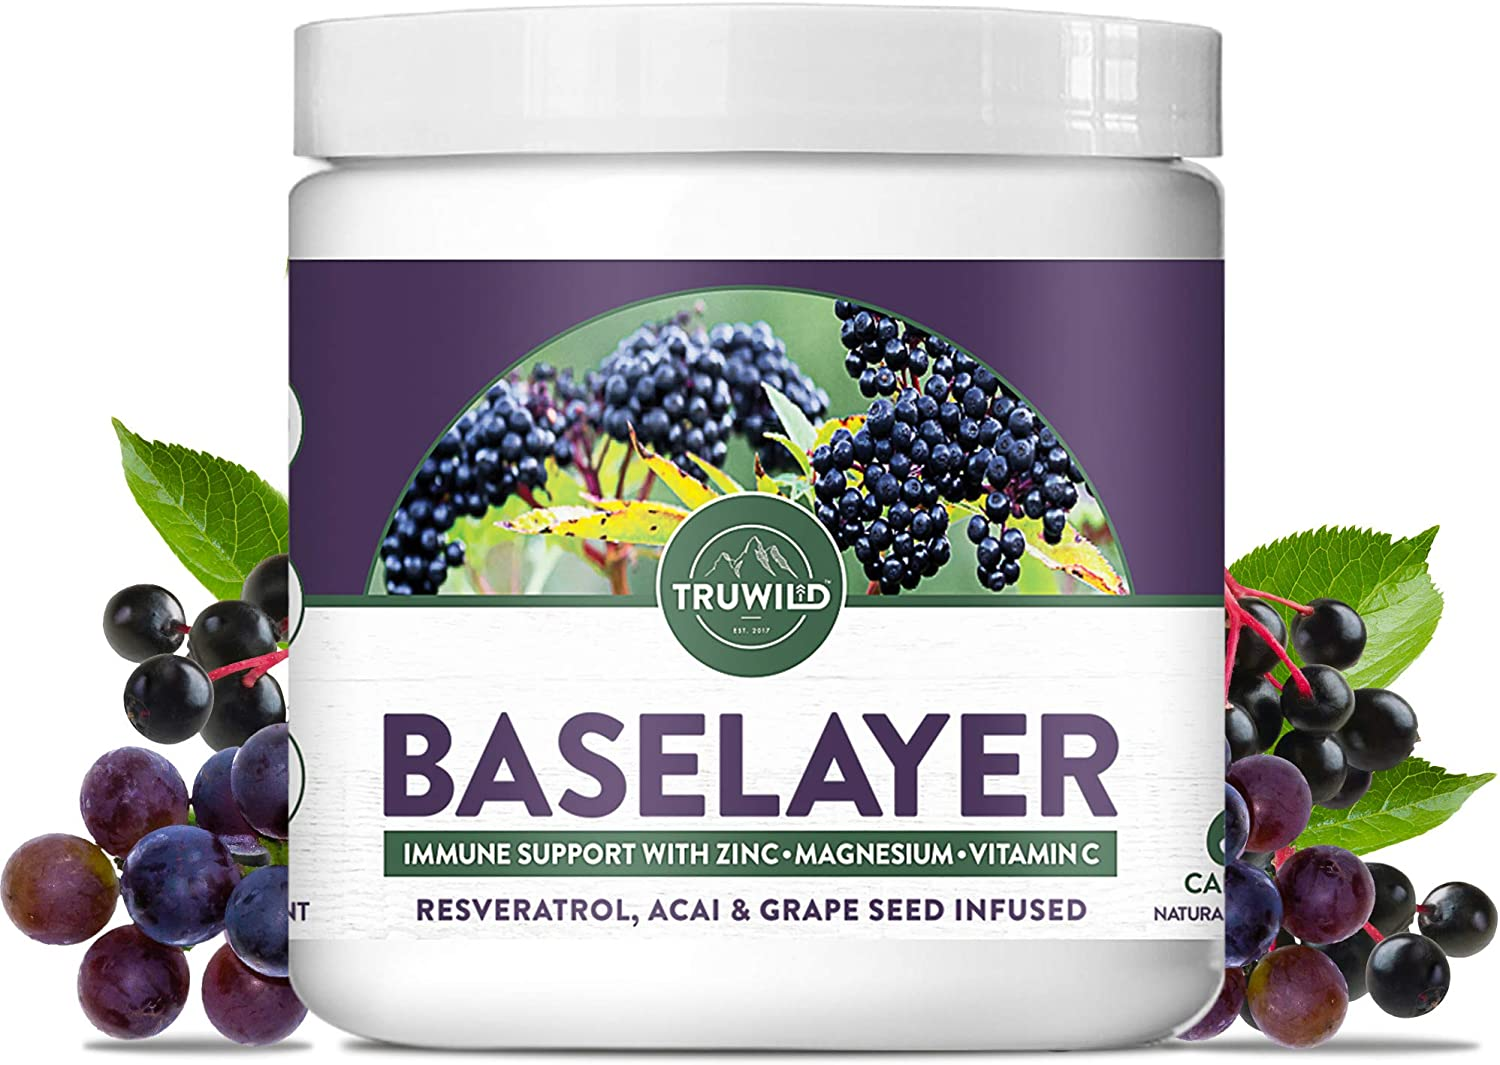 TRUWILD Baselayer Immune Support Supplement with Max 83% OFF Oakland Mall Antioxidant